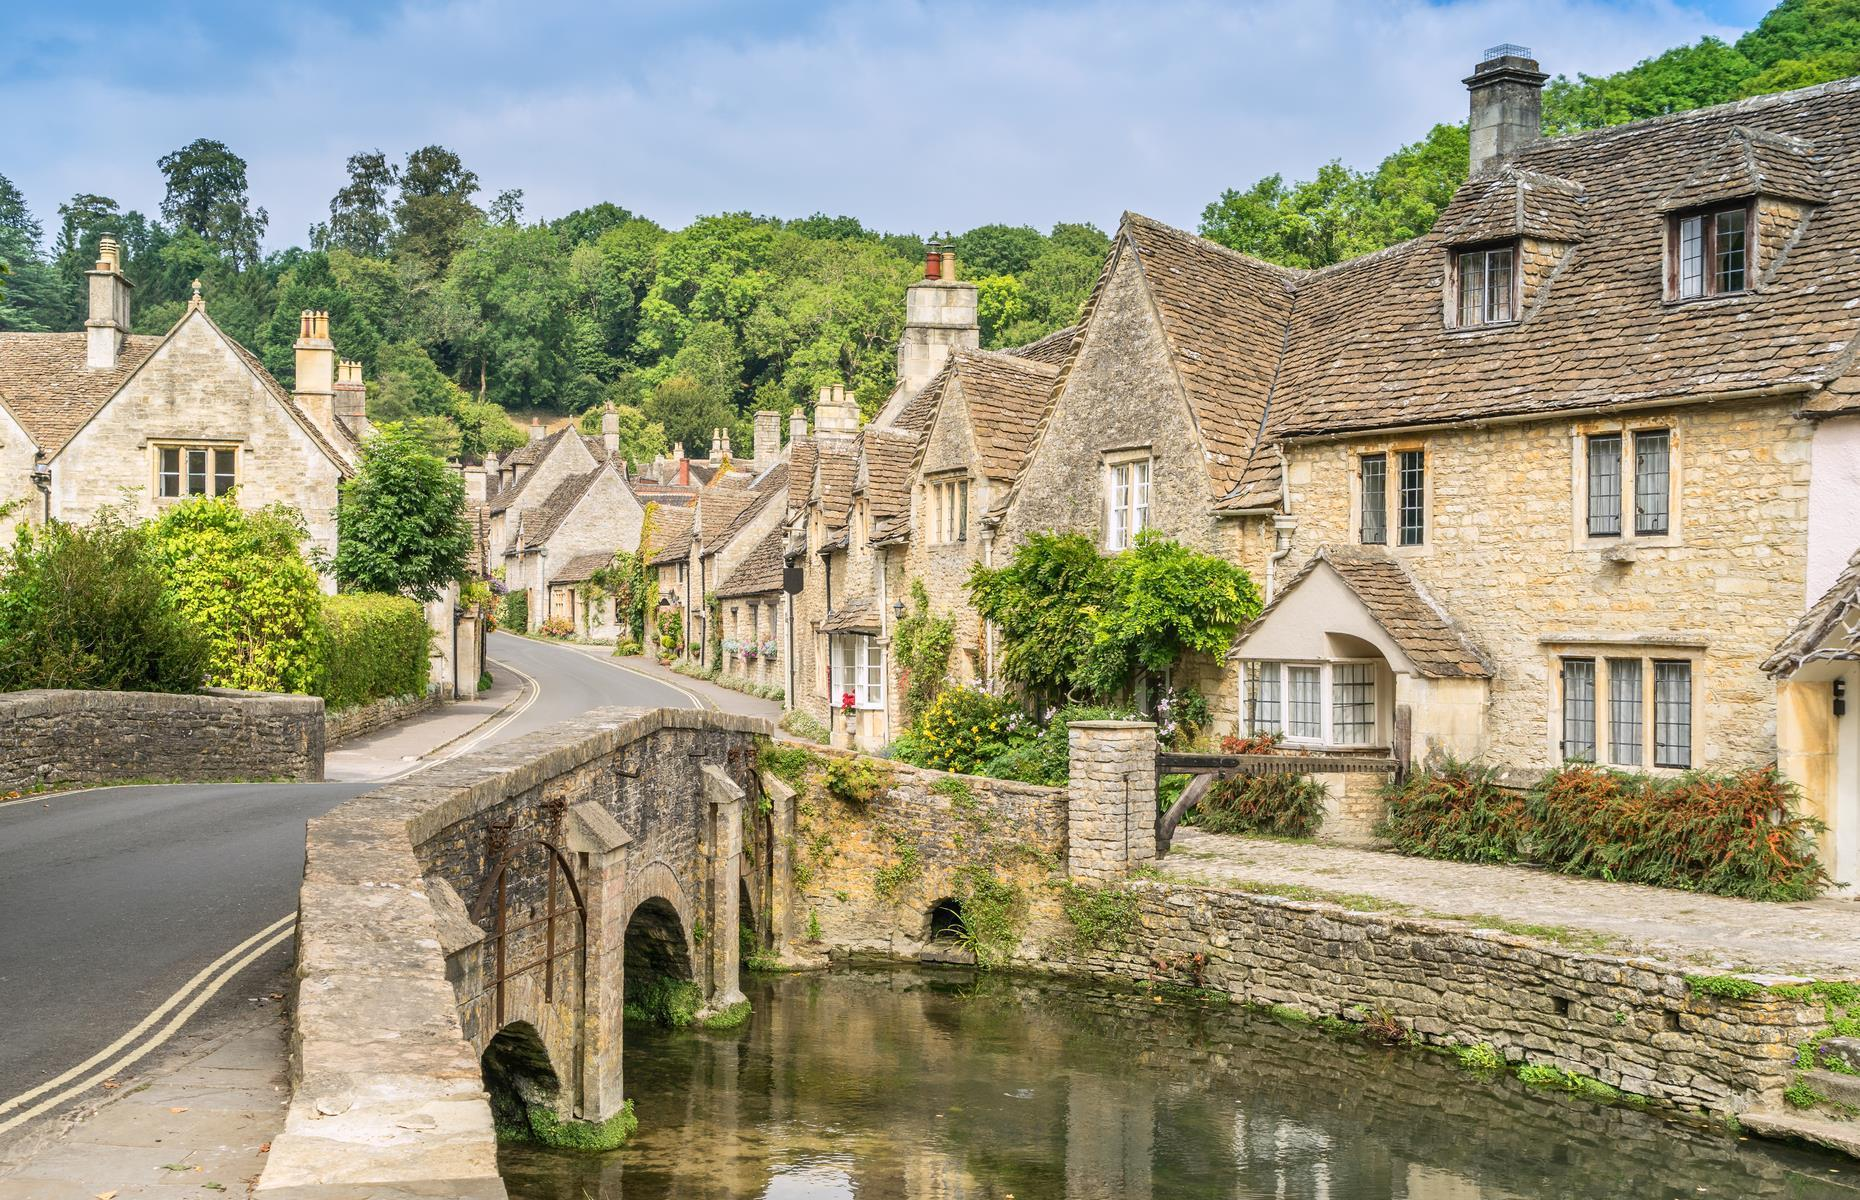 Slide 30 of 31: Villages don't come much more dreamy than this Cotswolds charmer with its honey-colored stone cottages, 13th-century church (whose faceless clock is thought to be one of the oldest in the country) and little stone bridges that cross the ambling River Bybrook. It's no wonder Castle Combe has caught the eye of movielocation scouts – credits include Stardust and Stephen Spielberg's War Horse.